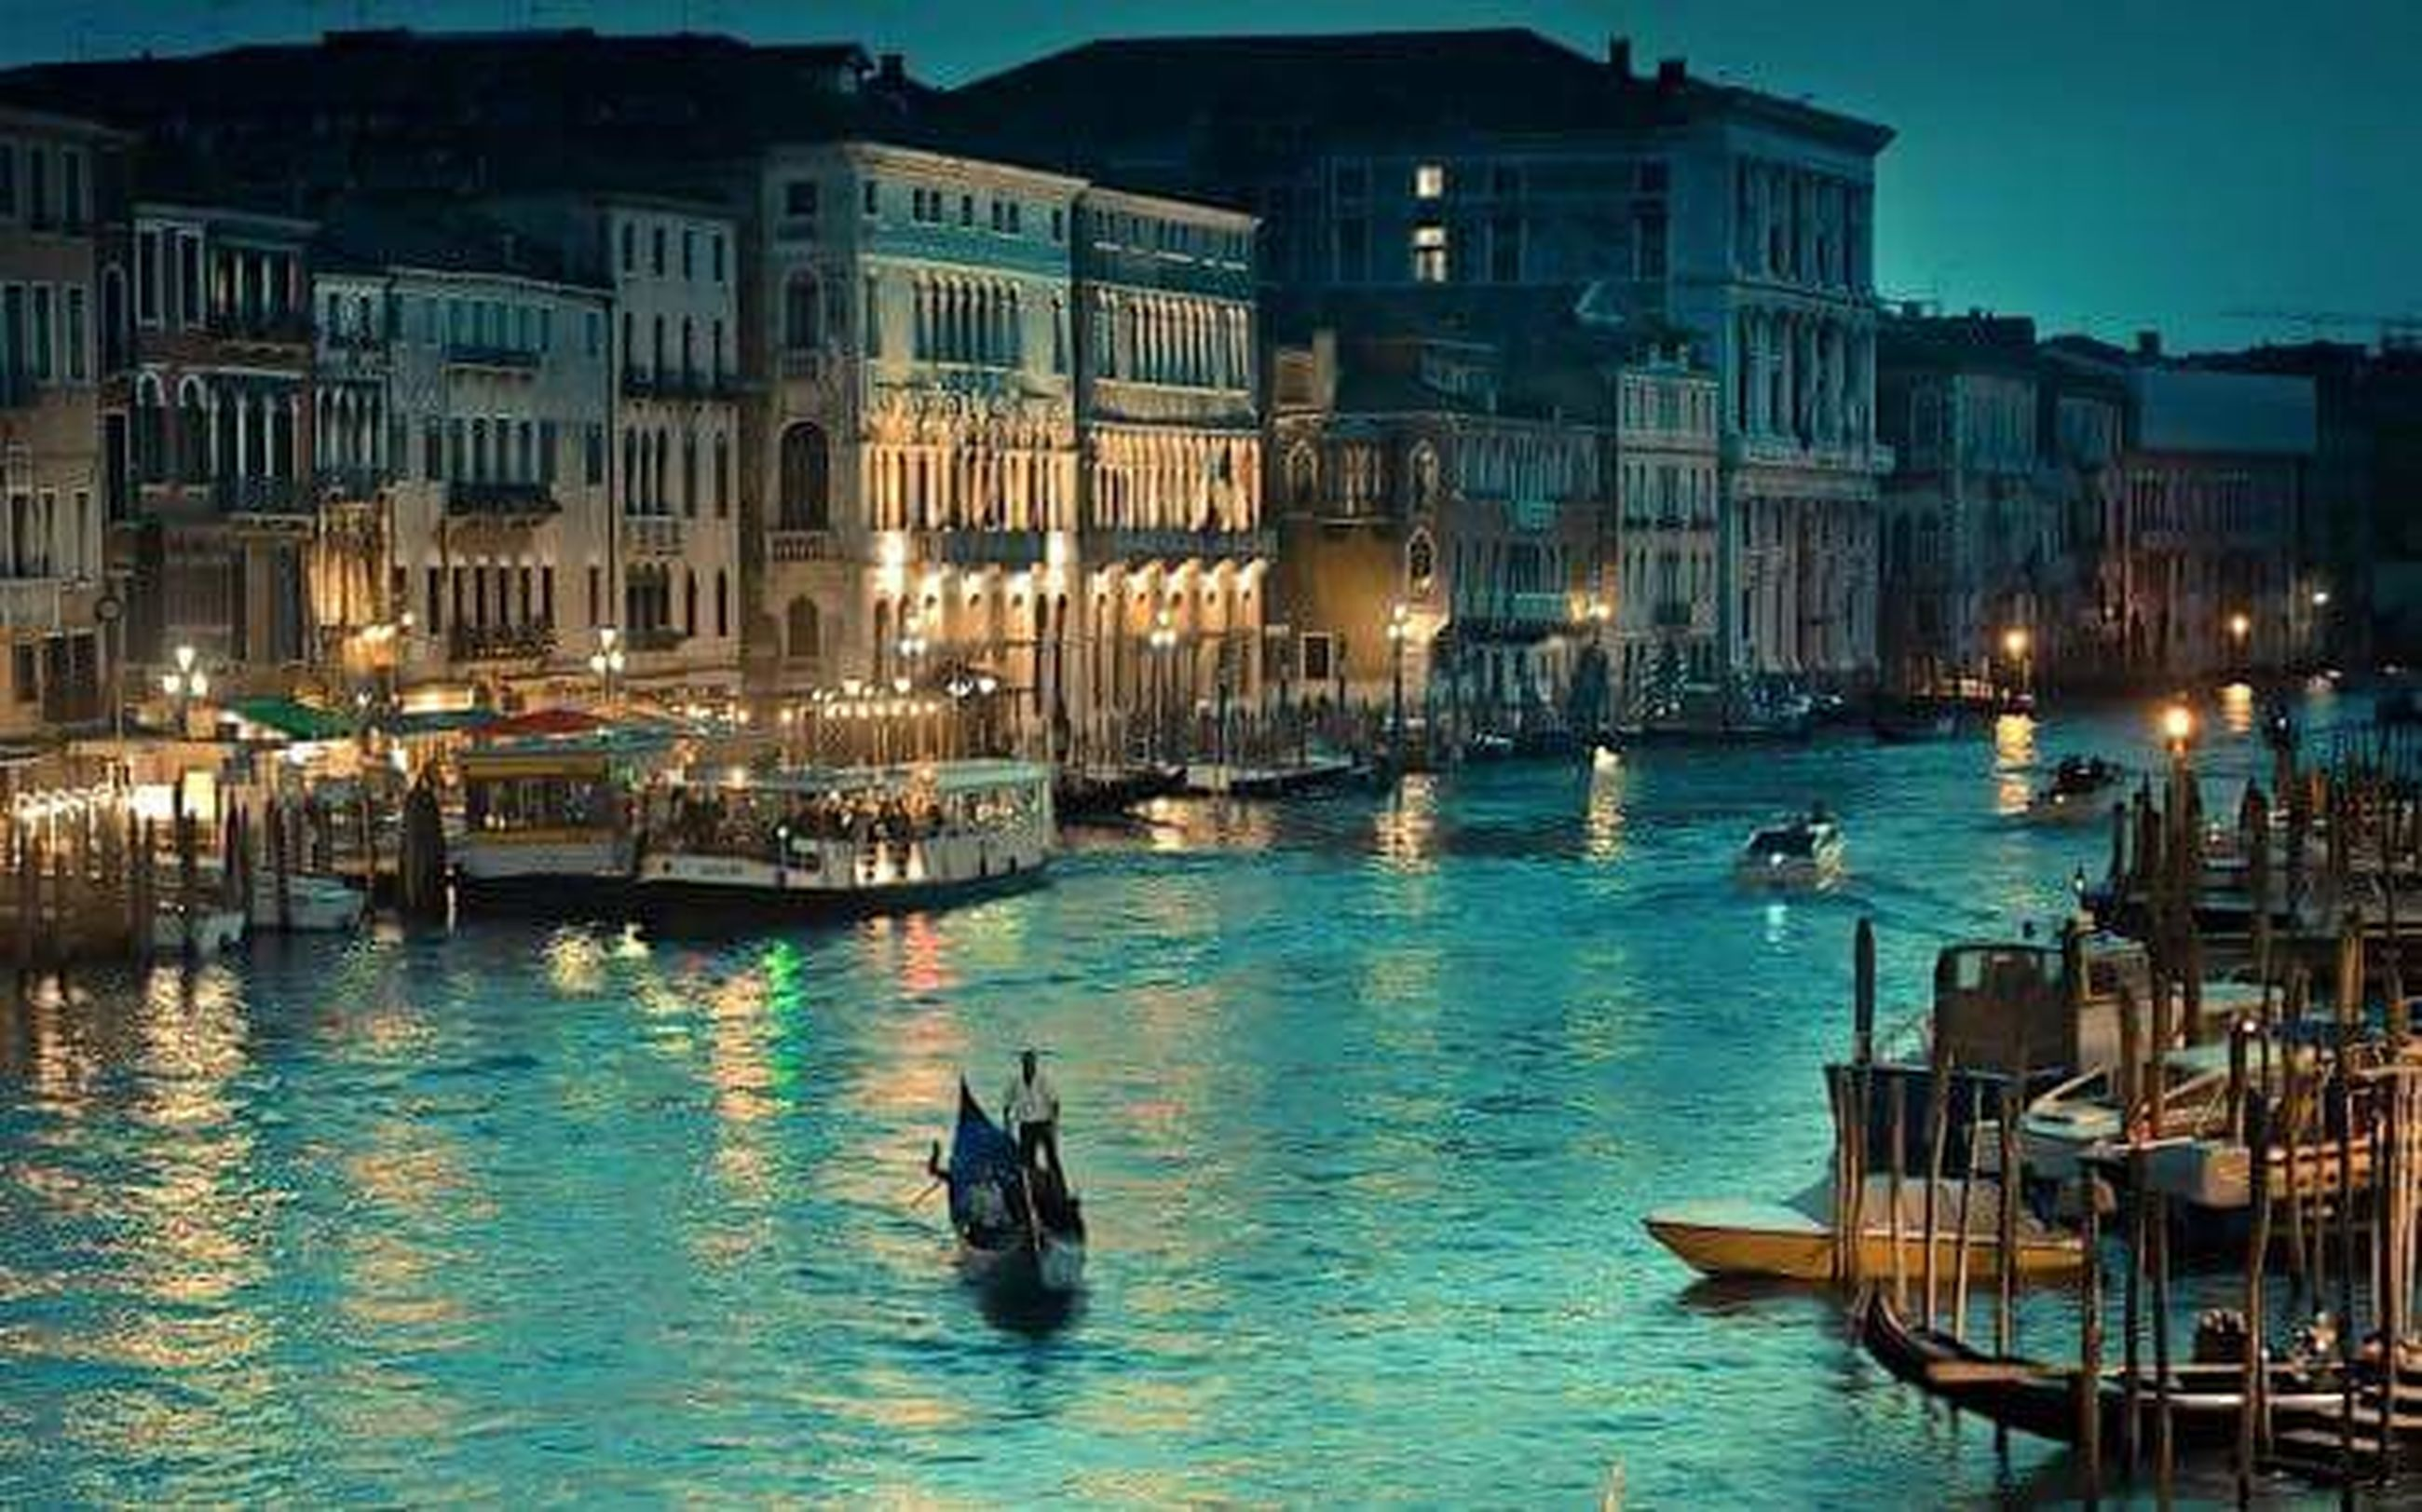 building exterior, architecture, built structure, illuminated, transportation, water, nautical vessel, city, canal, mode of transport, boat, waterfront, travel destinations, residential building, night, city life, glowing, sea, tourism, sky, building story, outdoors, dock